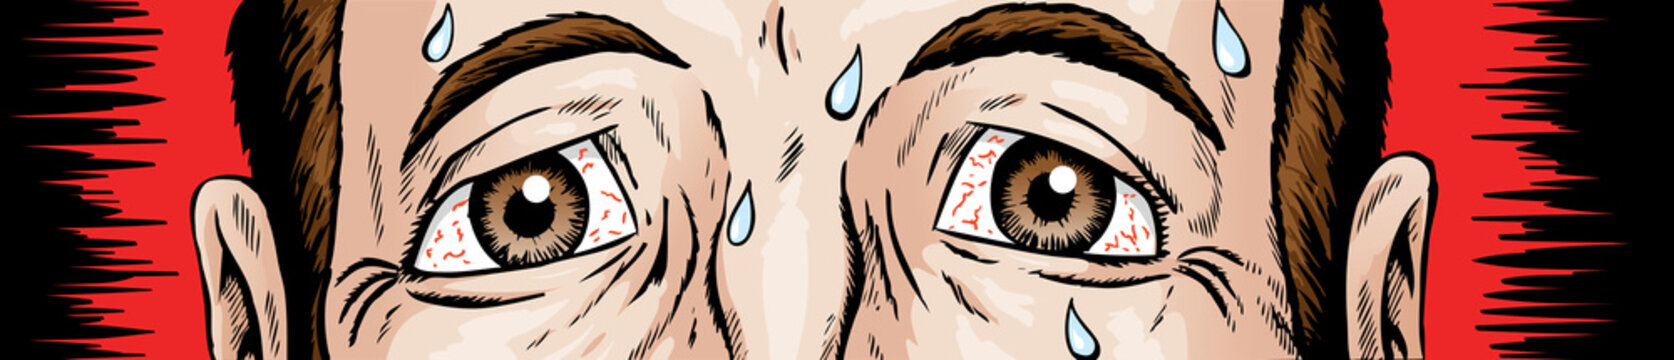 Cartoon of scared and nervous eyes